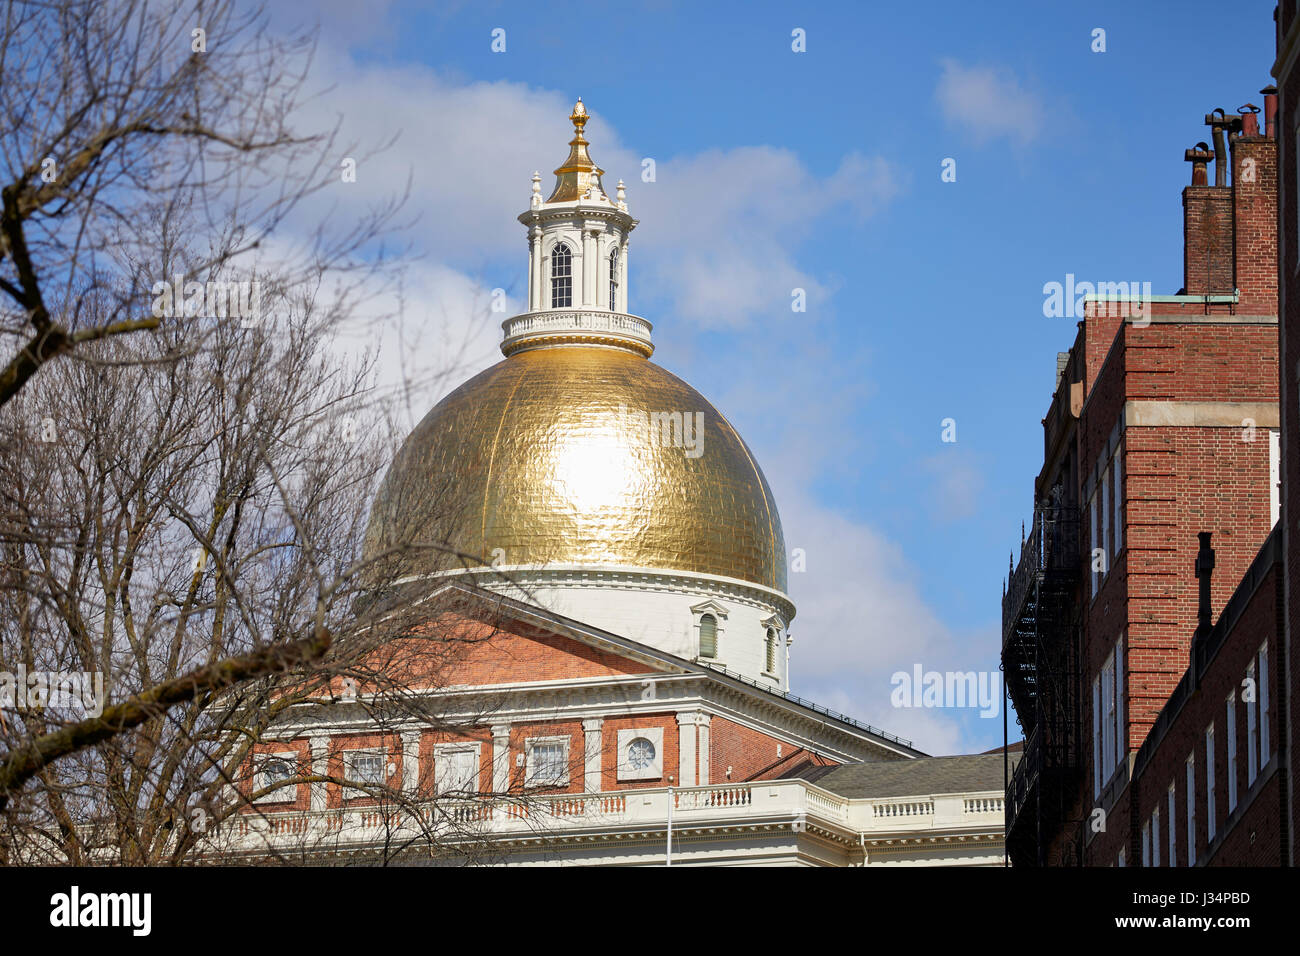 New State House, statehouse, Beacon Hill Historic District, Boston  Massachusetts, United States, USA, - Stock Image